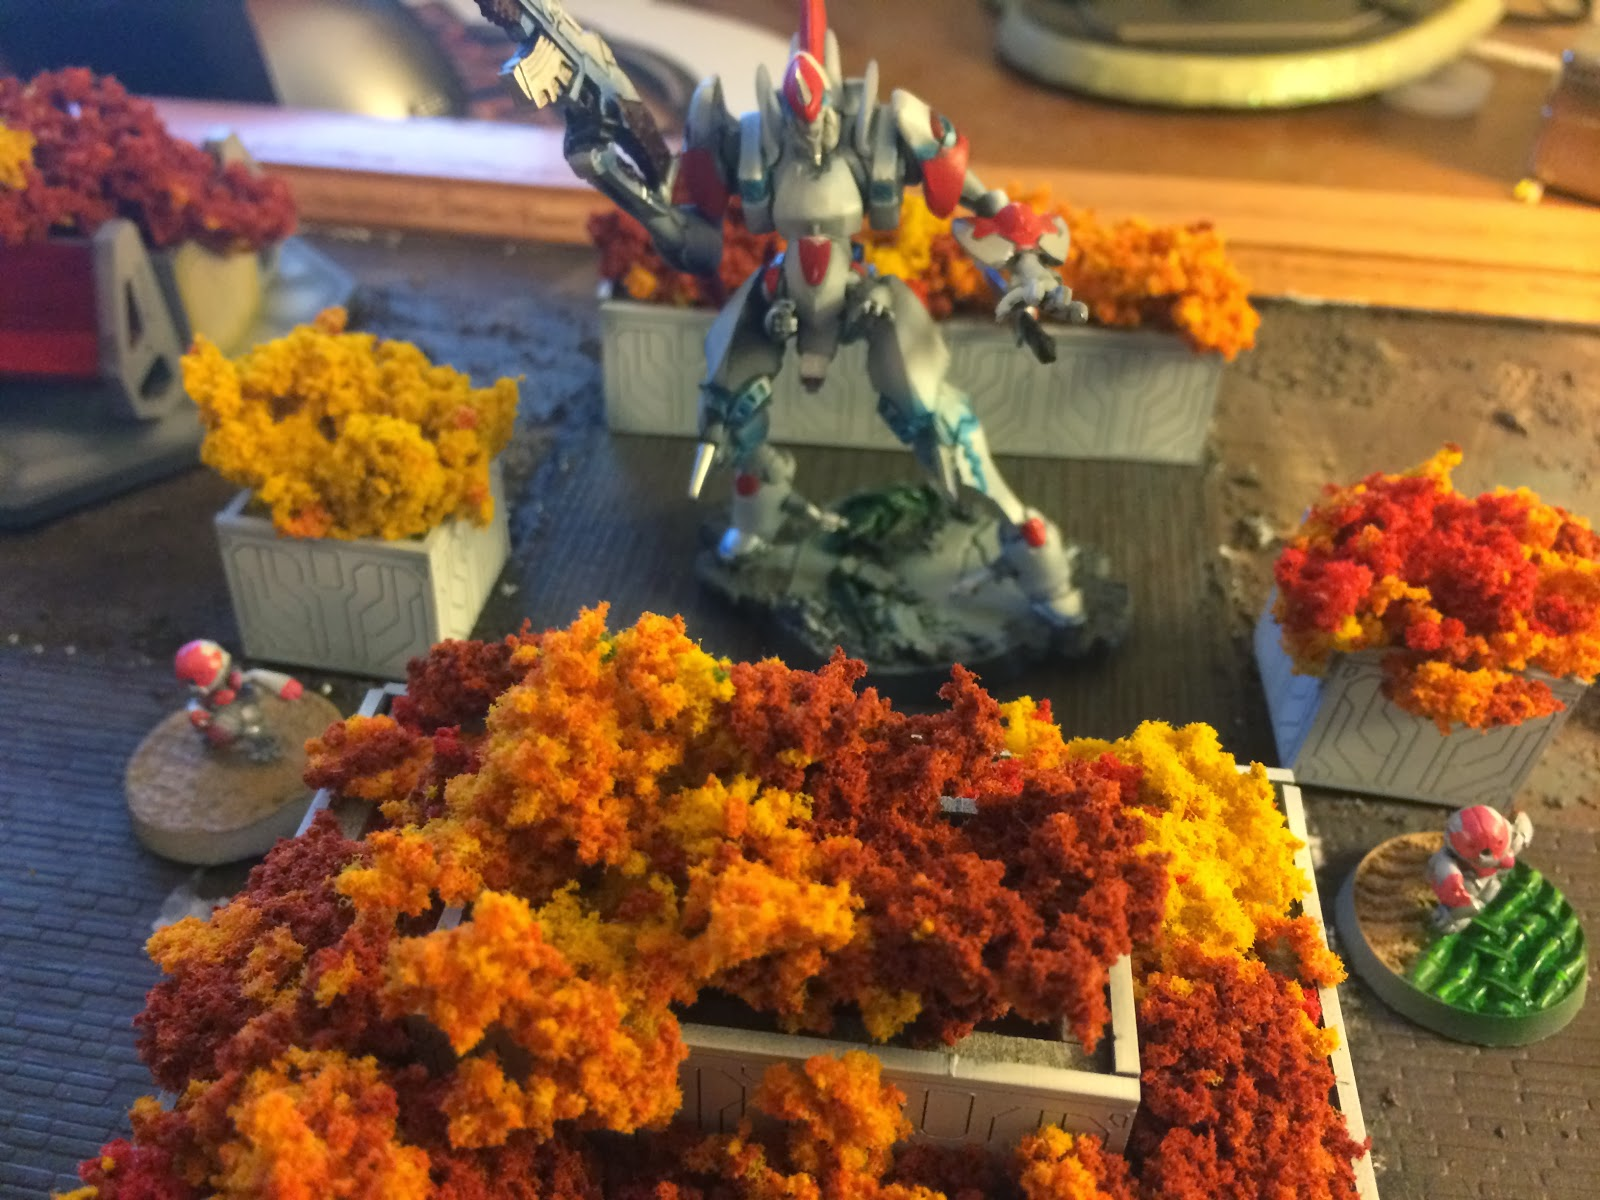 Terrain: Companies that make our games come to life